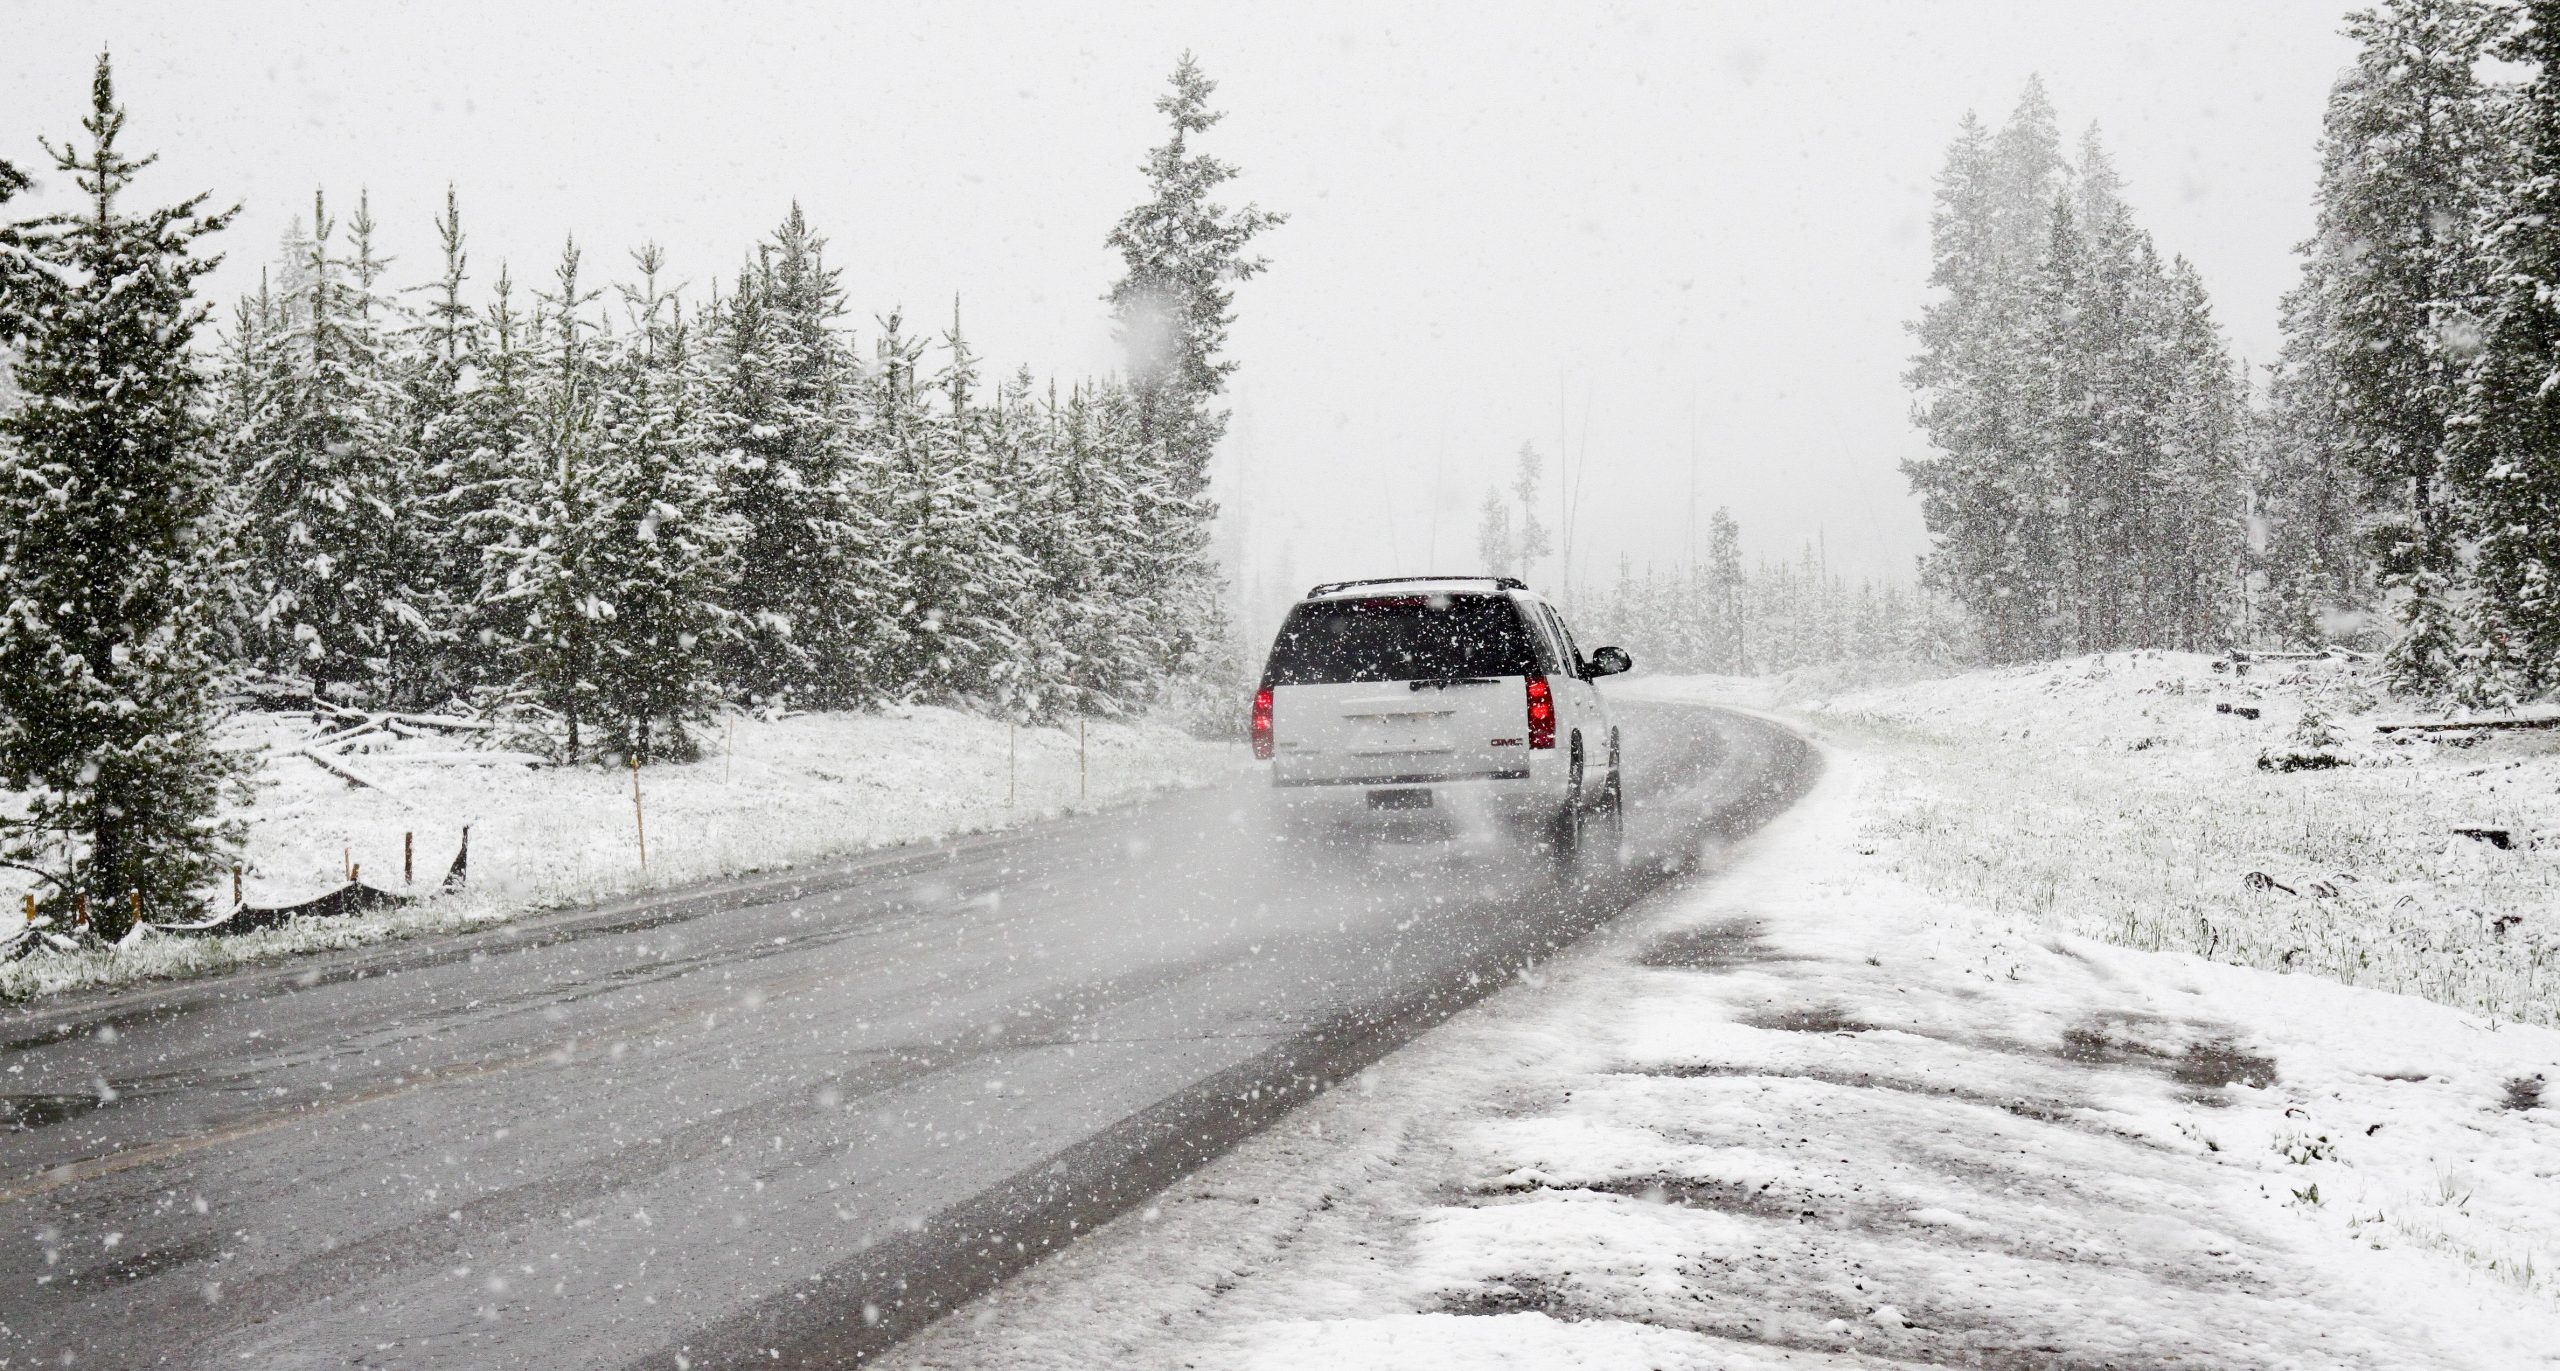 car driving on a snowy road